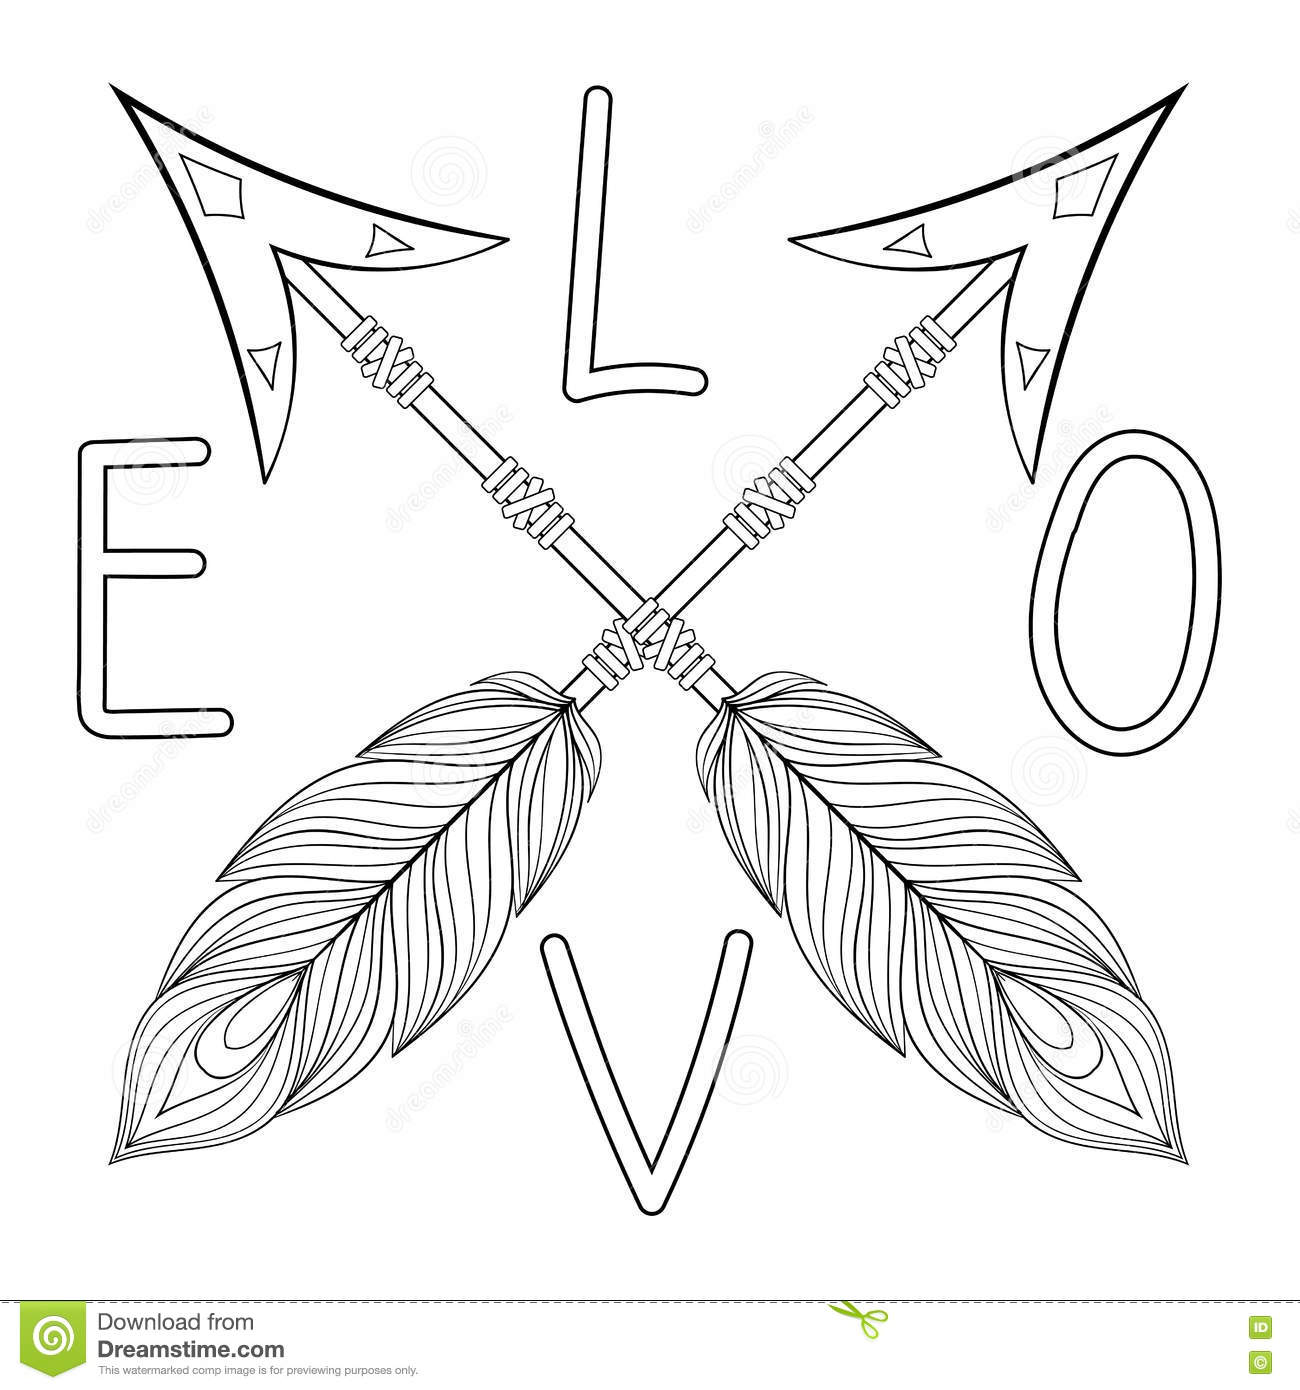 bohemian love arrow handpainted sign with feathers hand drawn